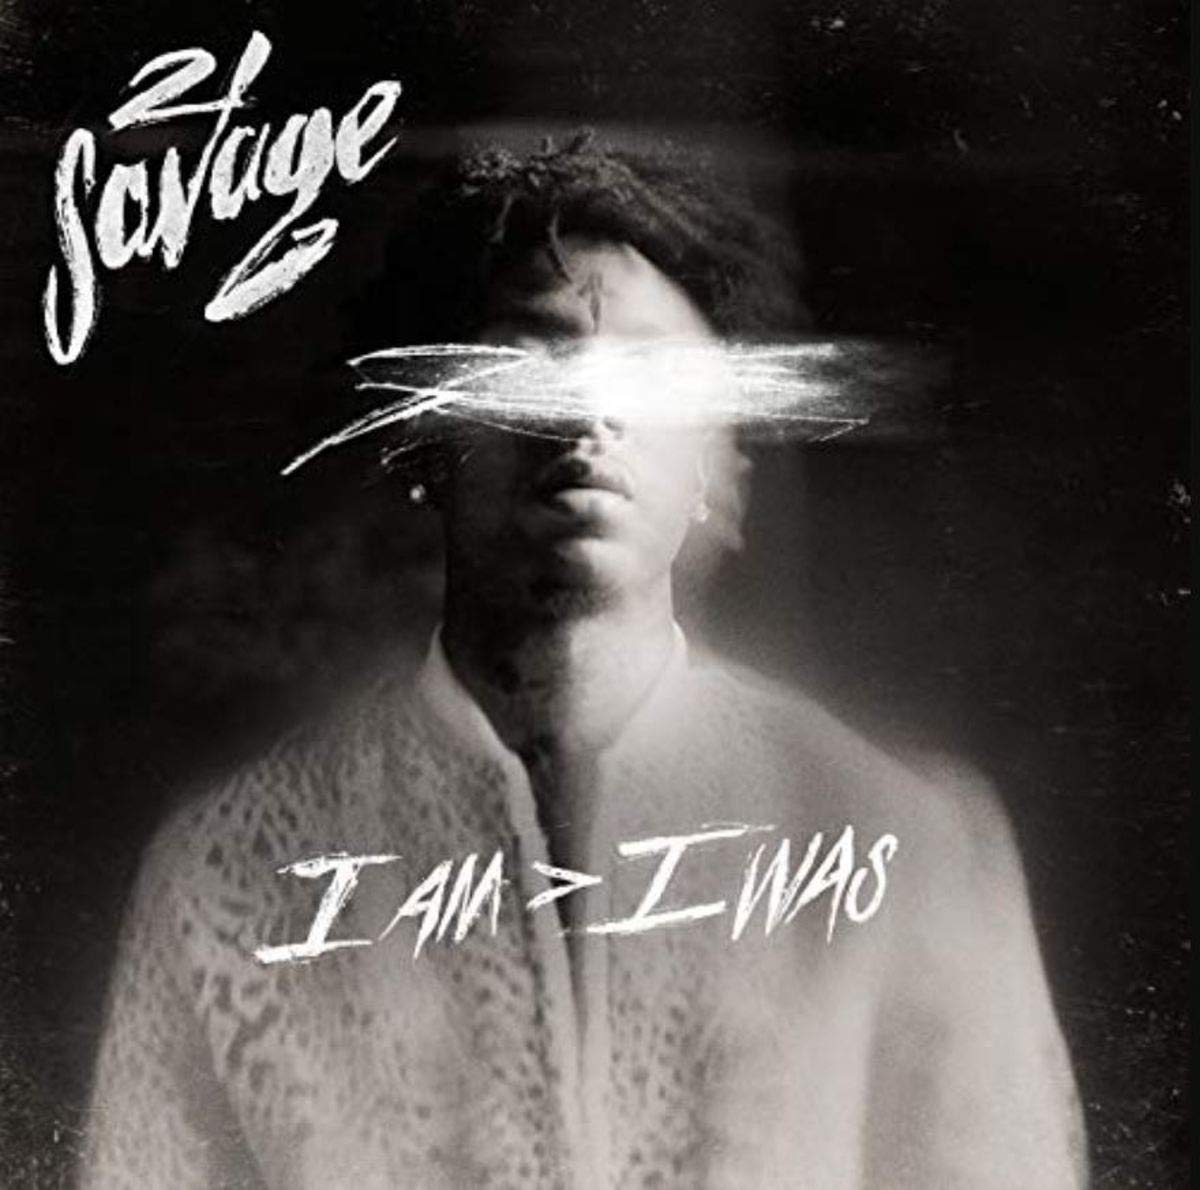 21 Savage/I Am I Was [LP]